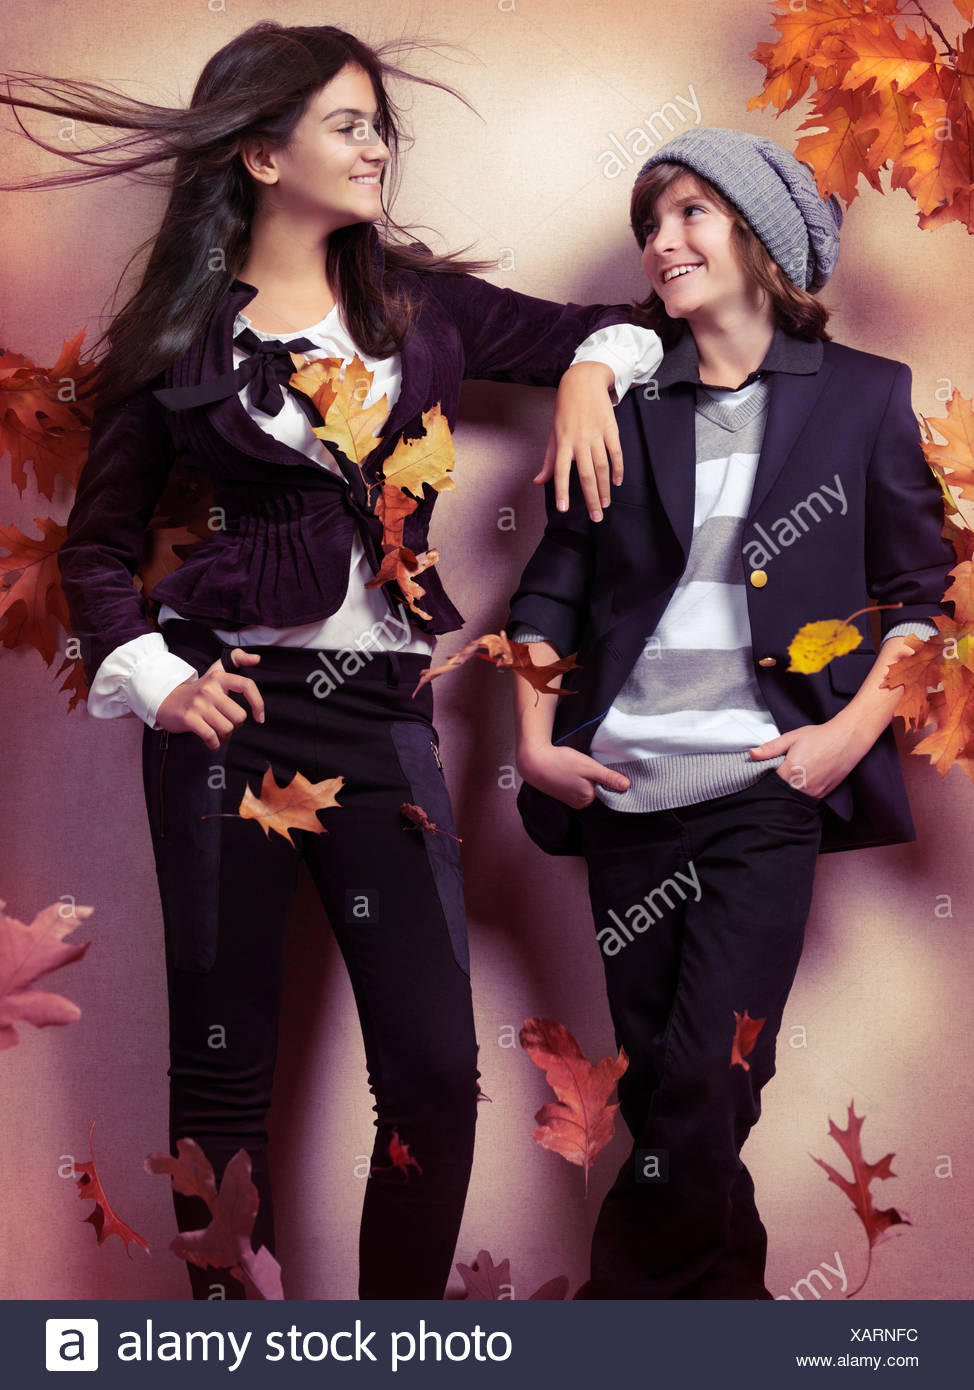 A Smiling Boy And A Teenage Girl Wearing Fashionable Clothes Autumn Leaves Falling Around Them Stock Photo Alamy